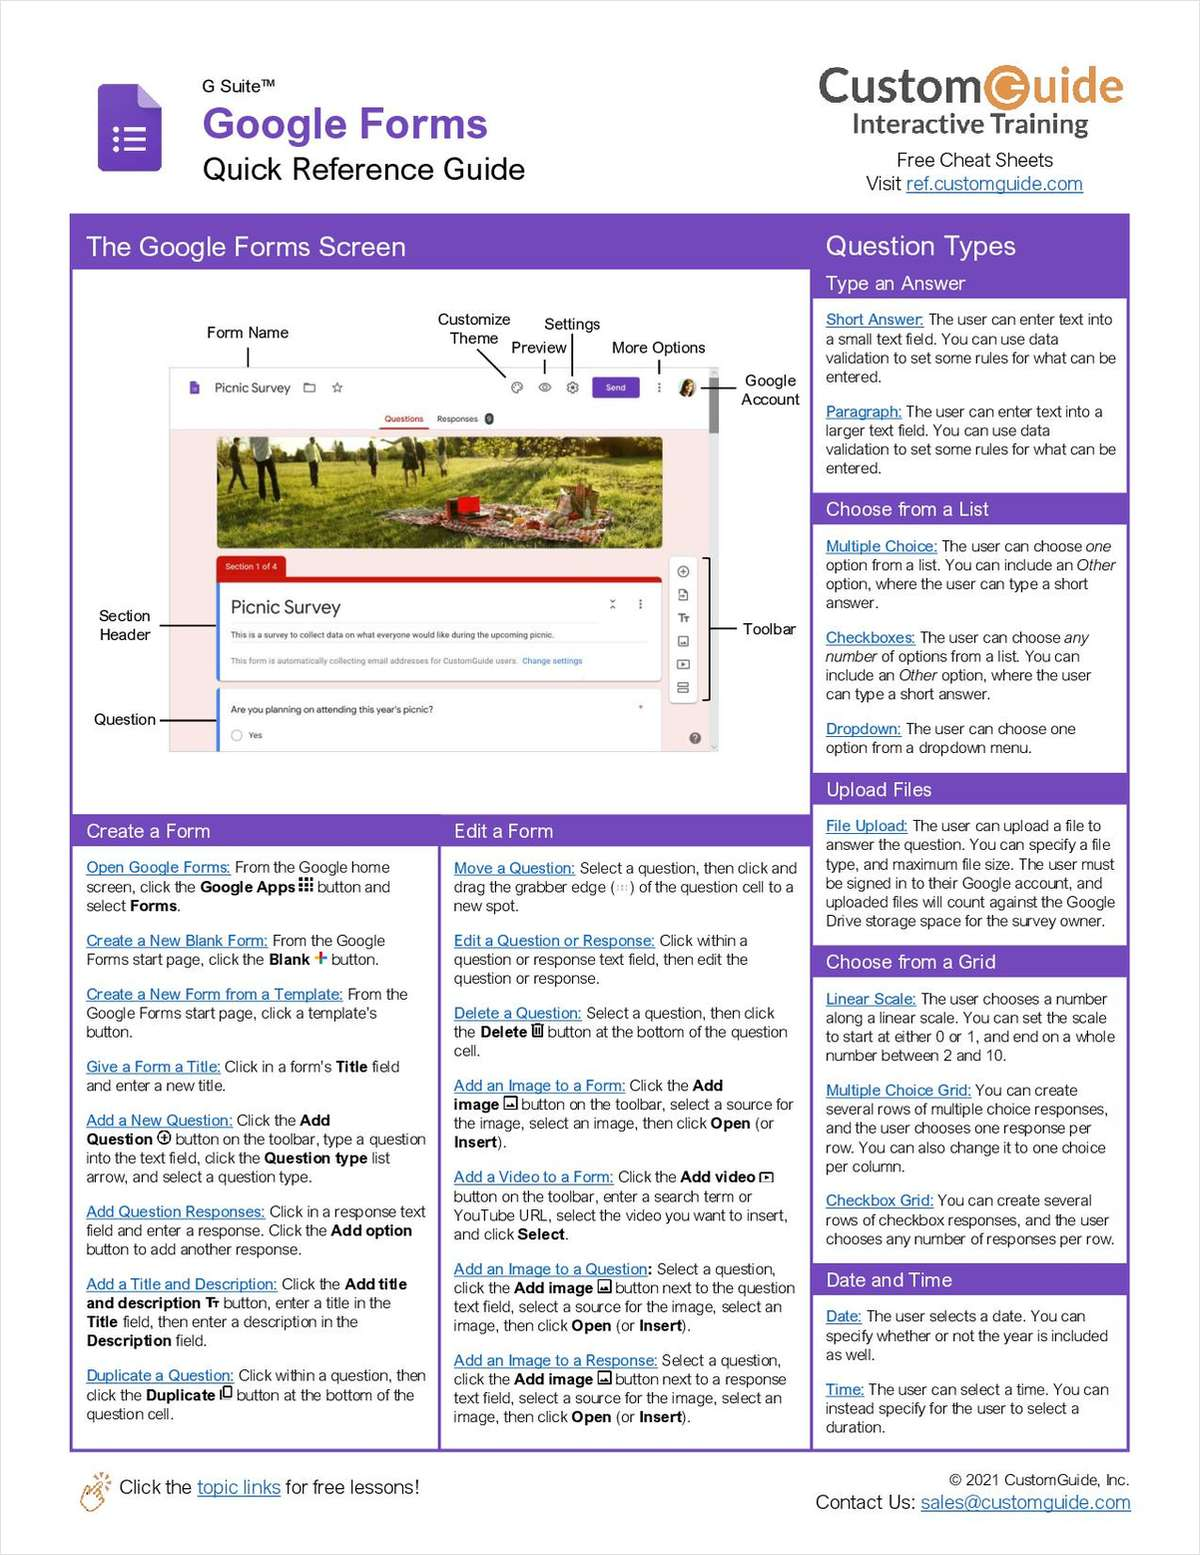 Google Forms Quick Reference Guide